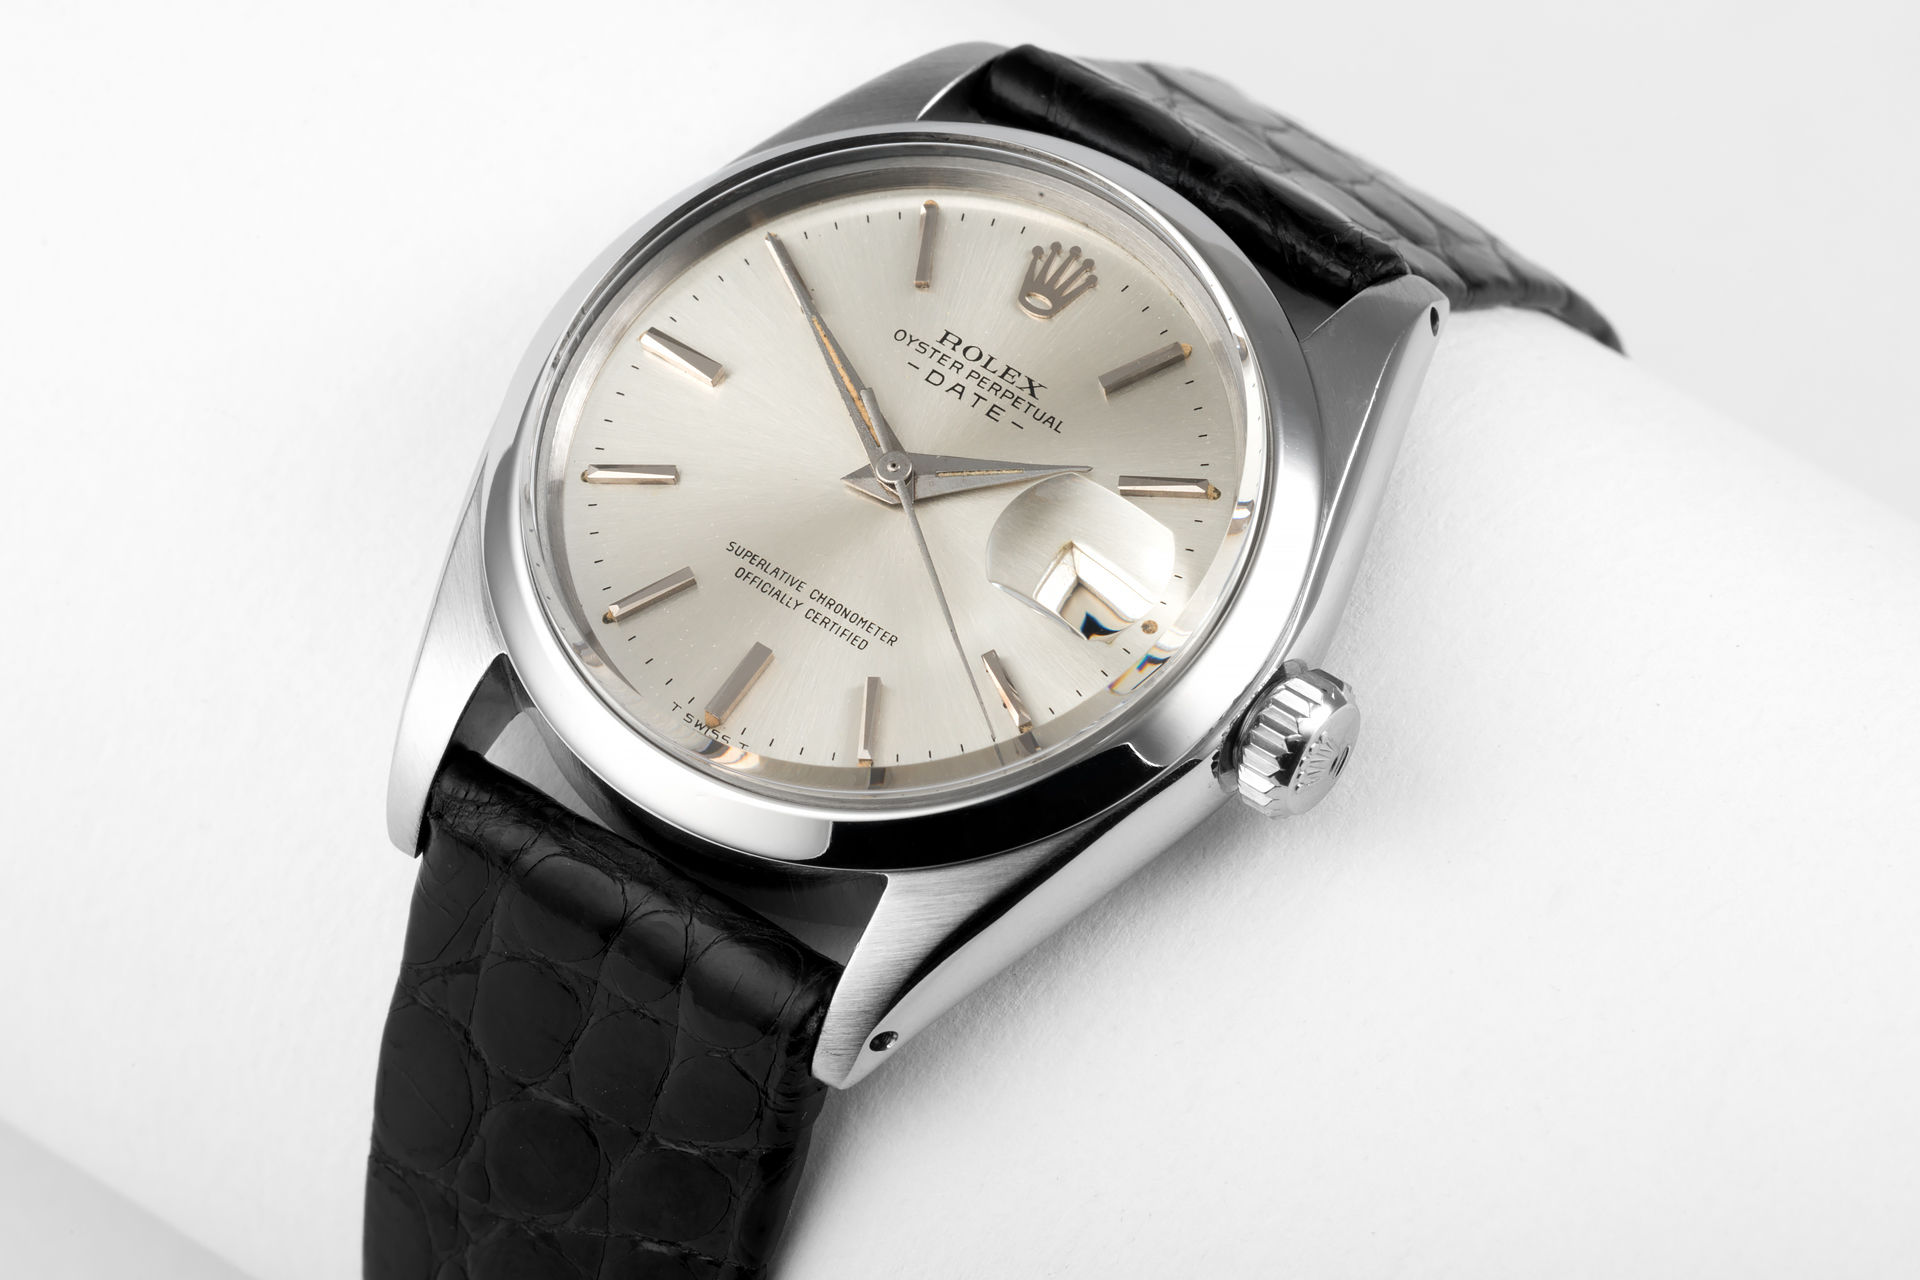 f45e3e3bd7f Rolex Oyster Date Watches | ref 1500 | Vintage 'Ingot Batons' | The ...